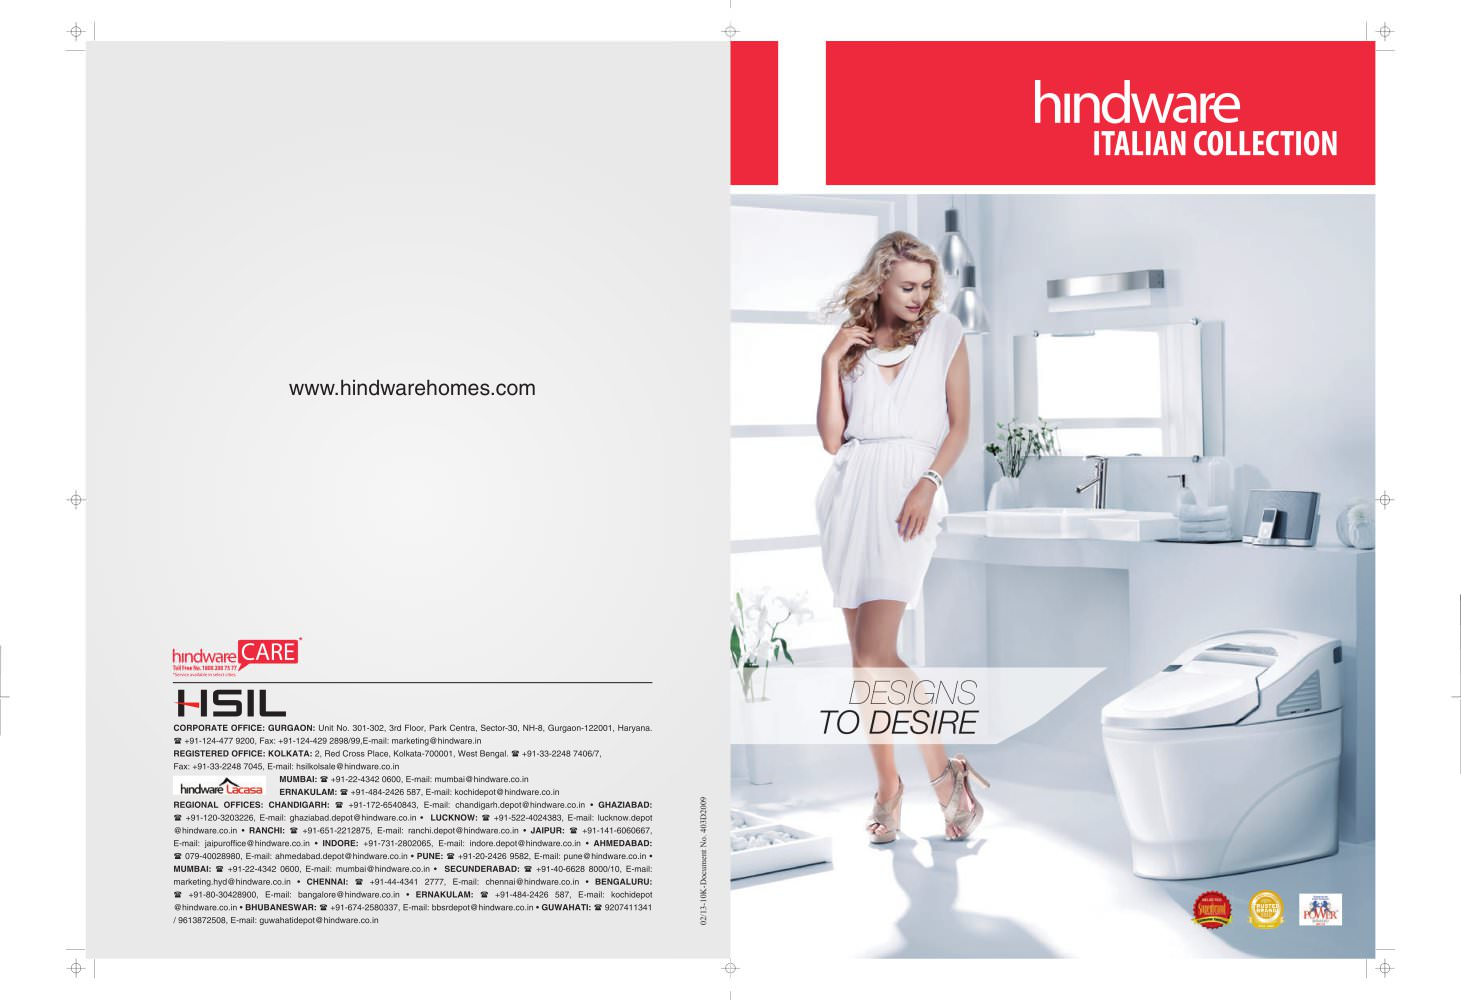 hindware price list 2018 pdf Hindware   HSIL Limited (Hindware)   PDF Catalogues  hindware price list 2018 pdf